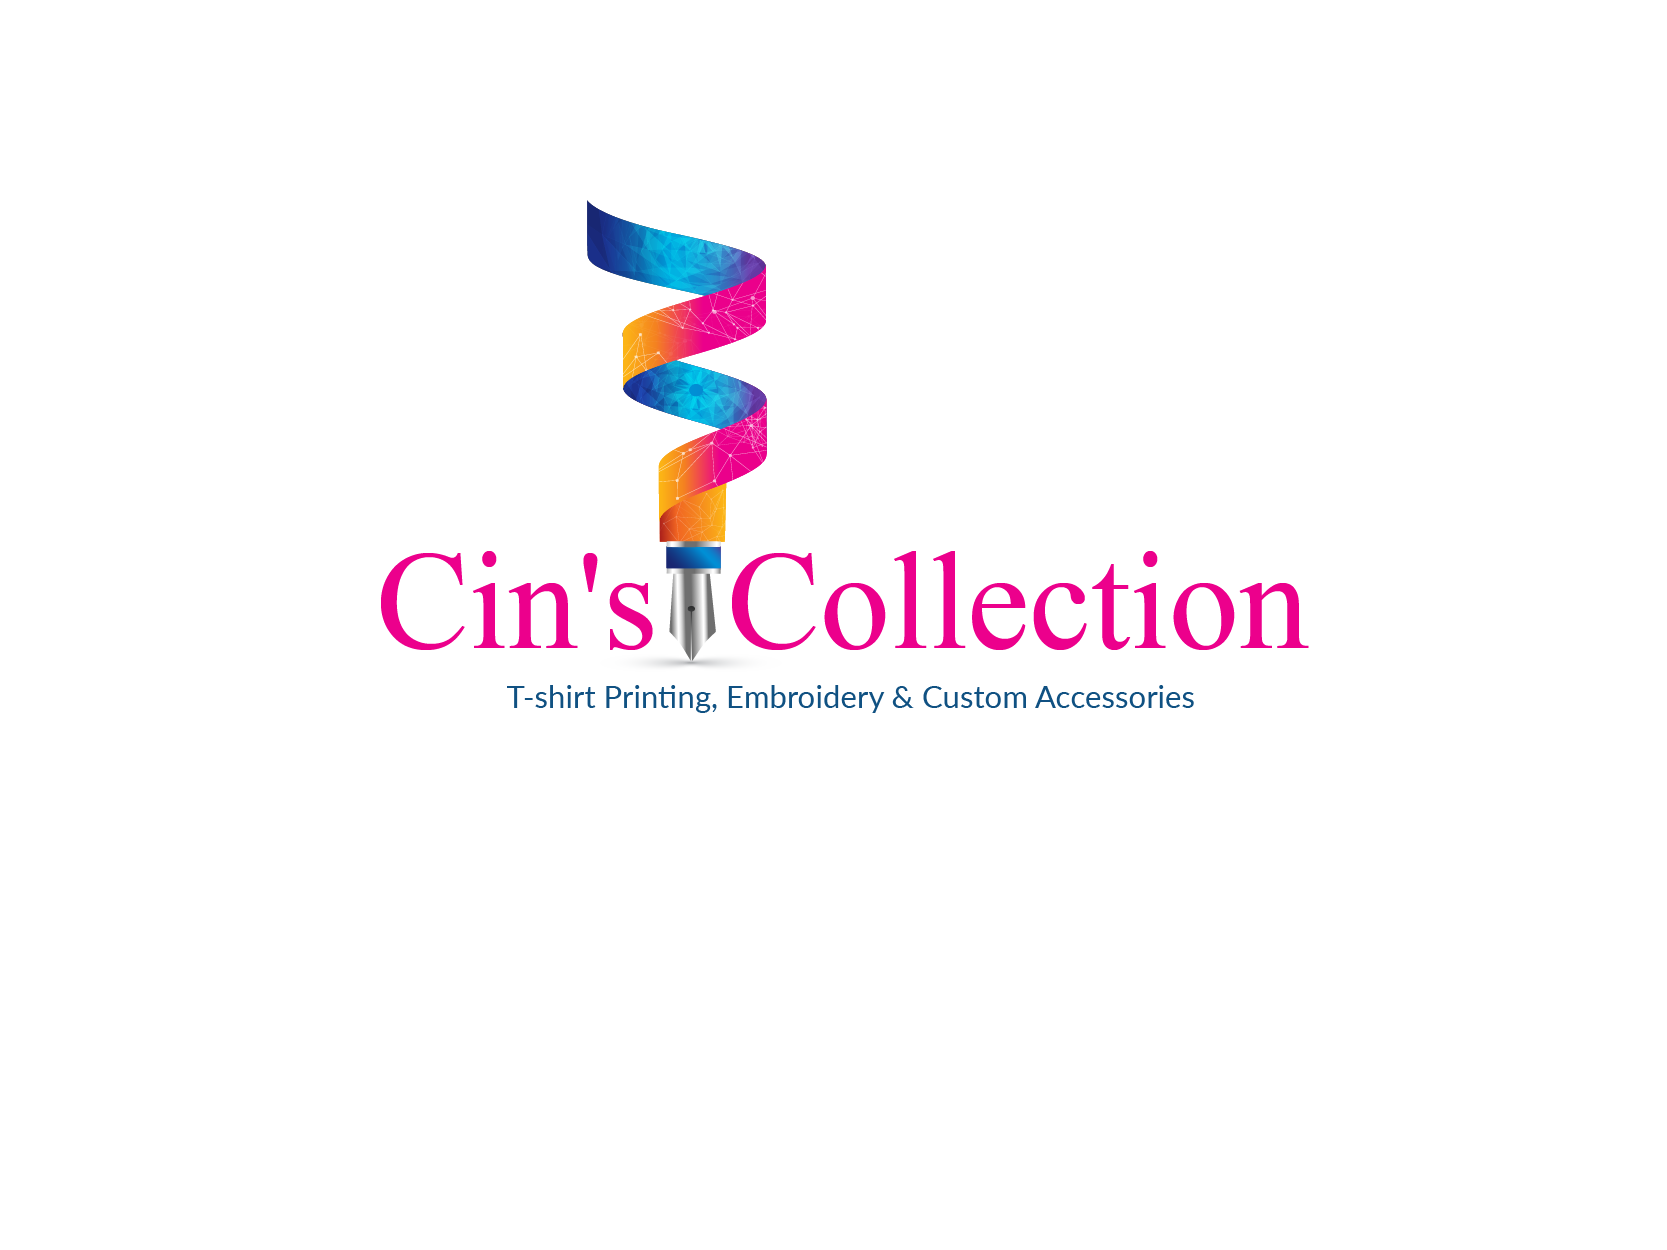 Cin's Collection  M6 Michigan Ave.  323-396-6463  cinscollection1@yahoo.com  Instagram: cins_collection  Facebook: cinscollection1